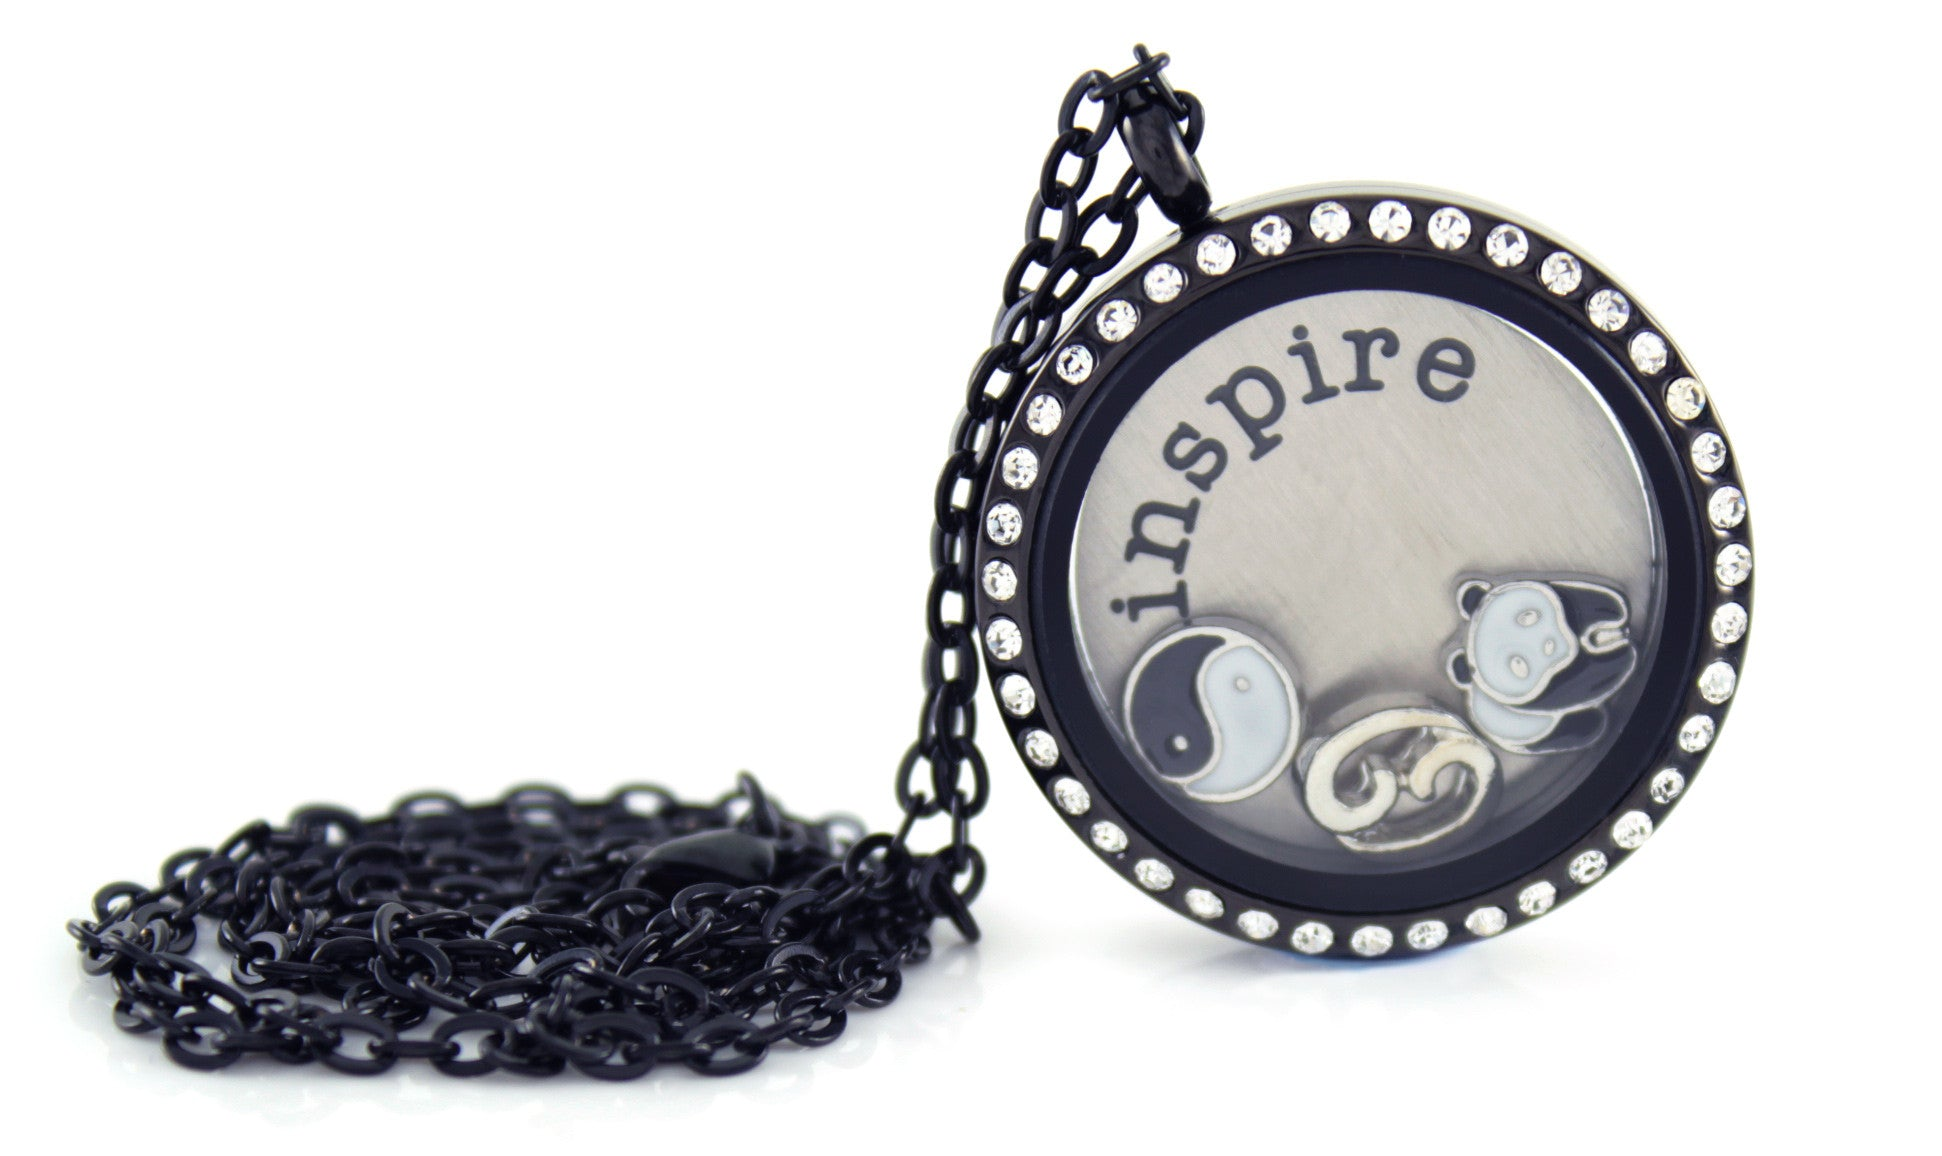 Stainless Steel Floating Locket Necklace with Choice of 6 Charms and 1 Plate (Gunmetal Rhinestone)